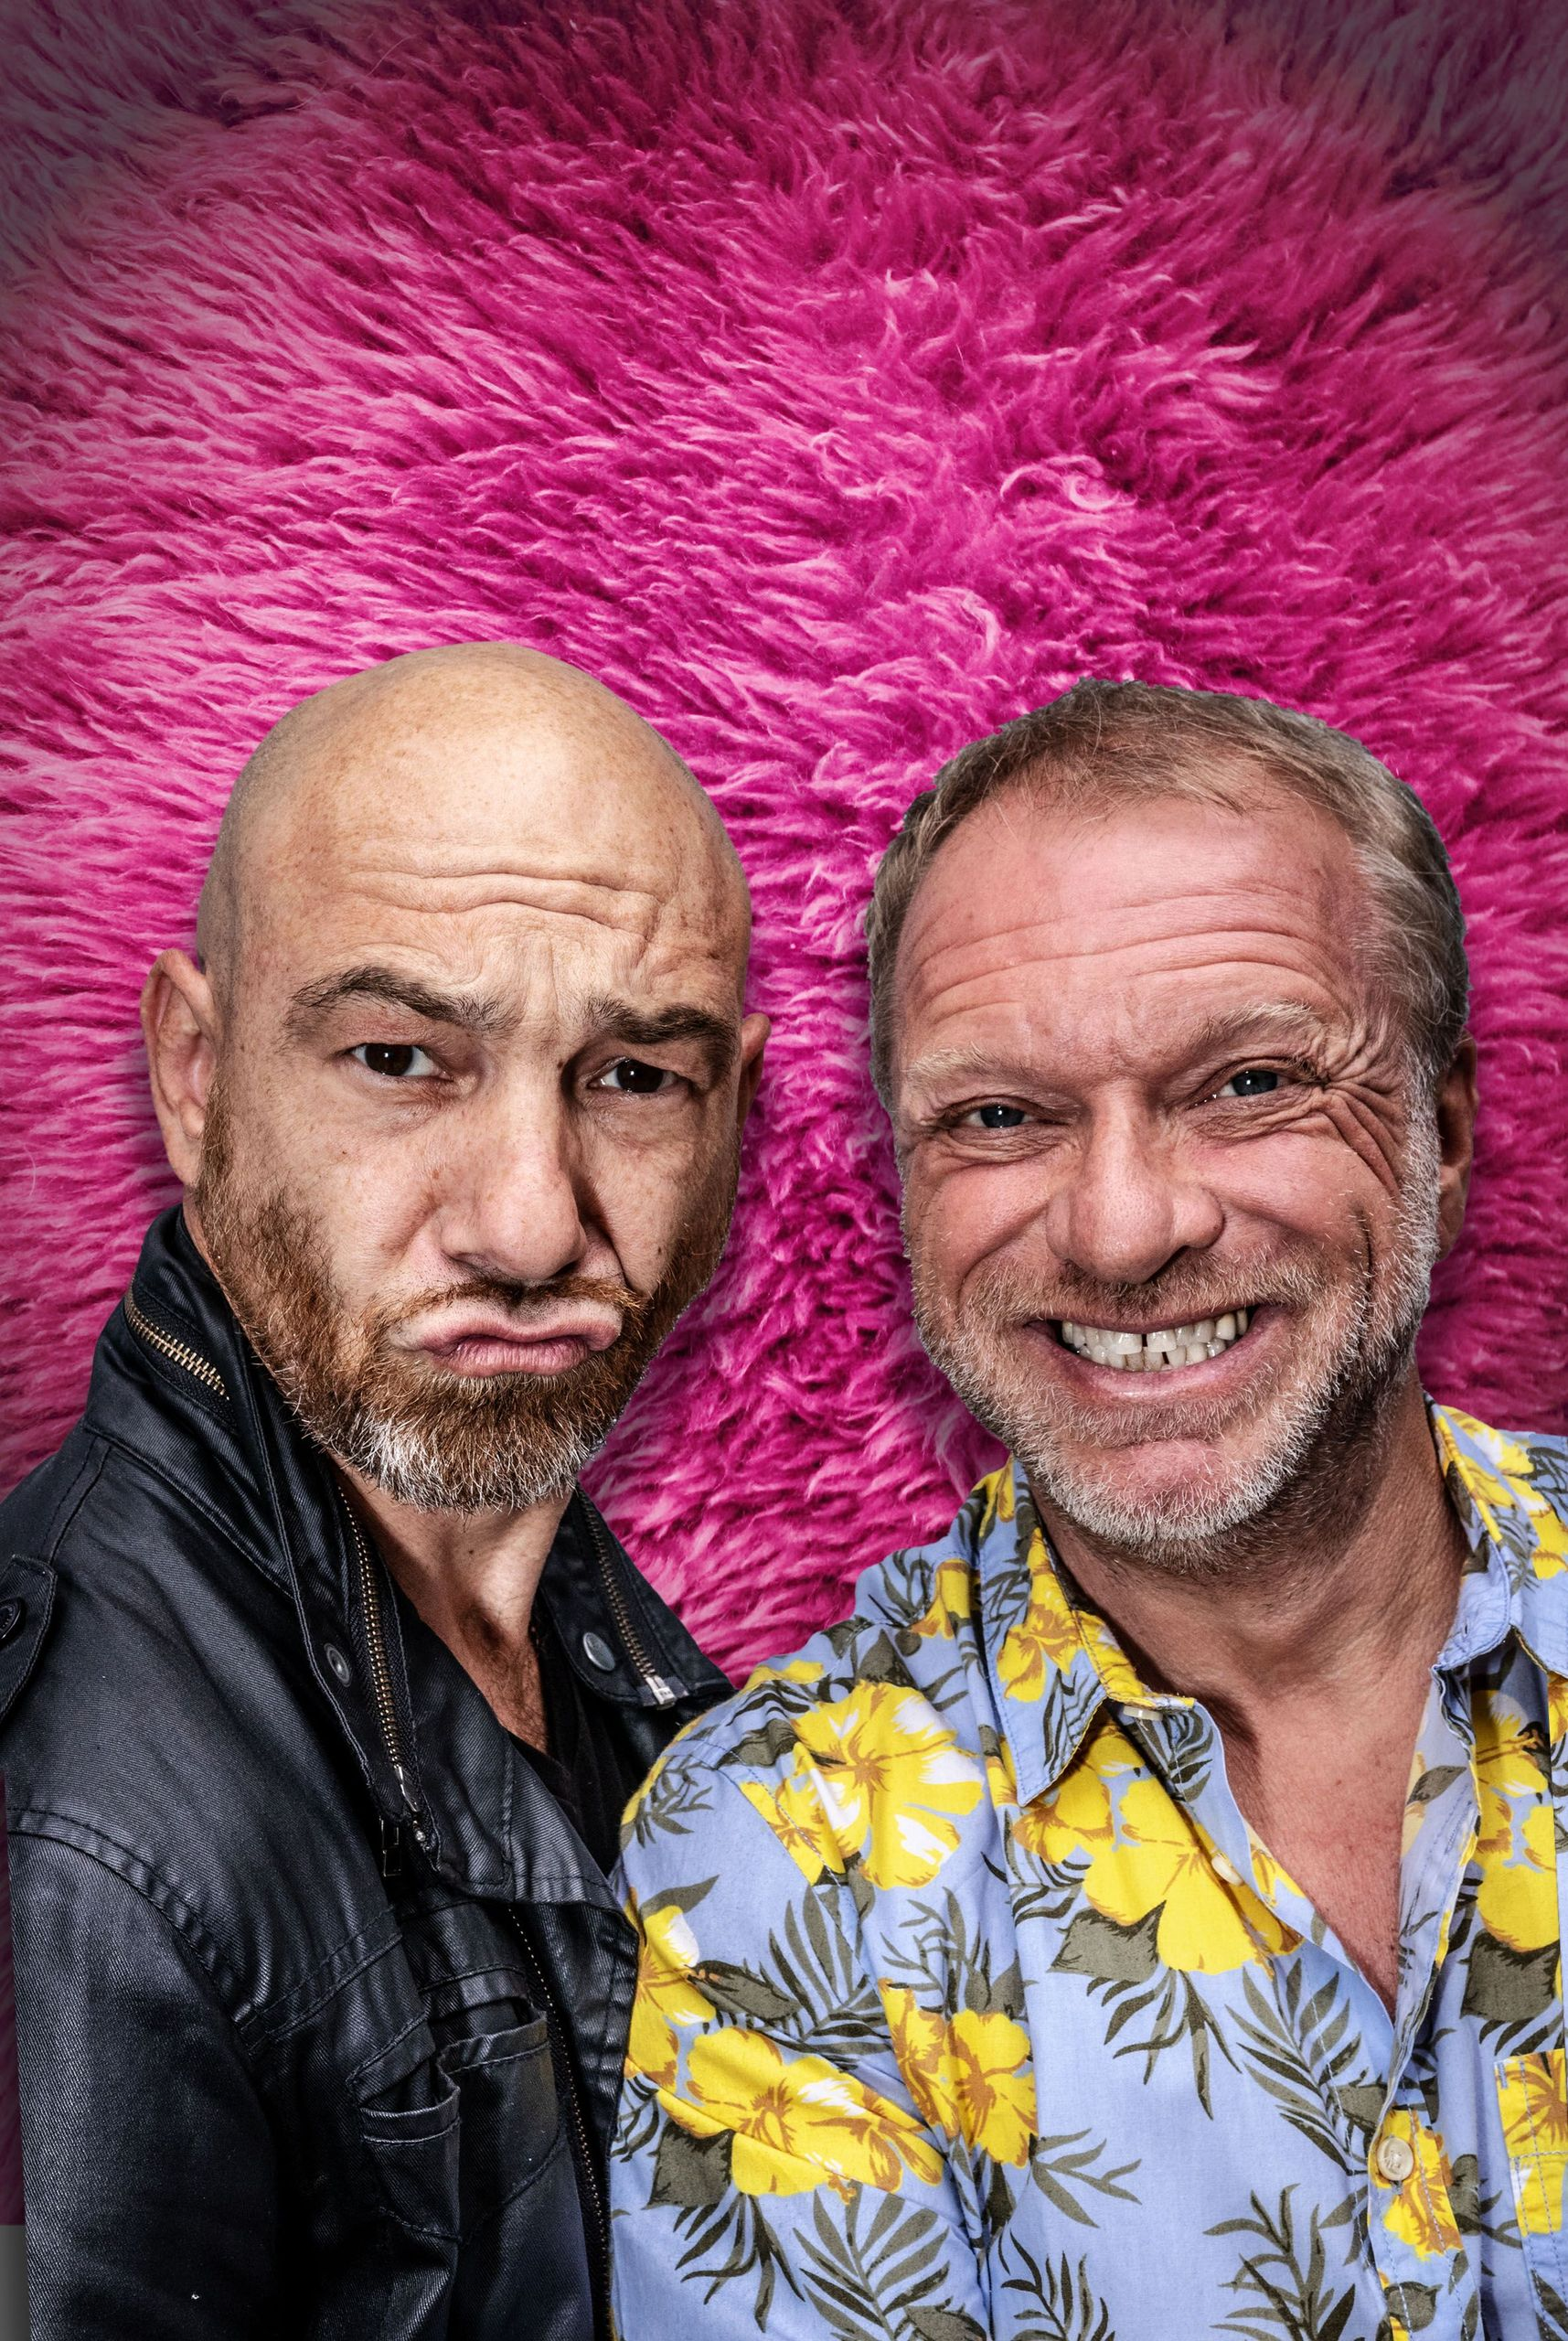 """Voll am Start"" mit Reinhard Nowak & Roman Gregory am 30. August"